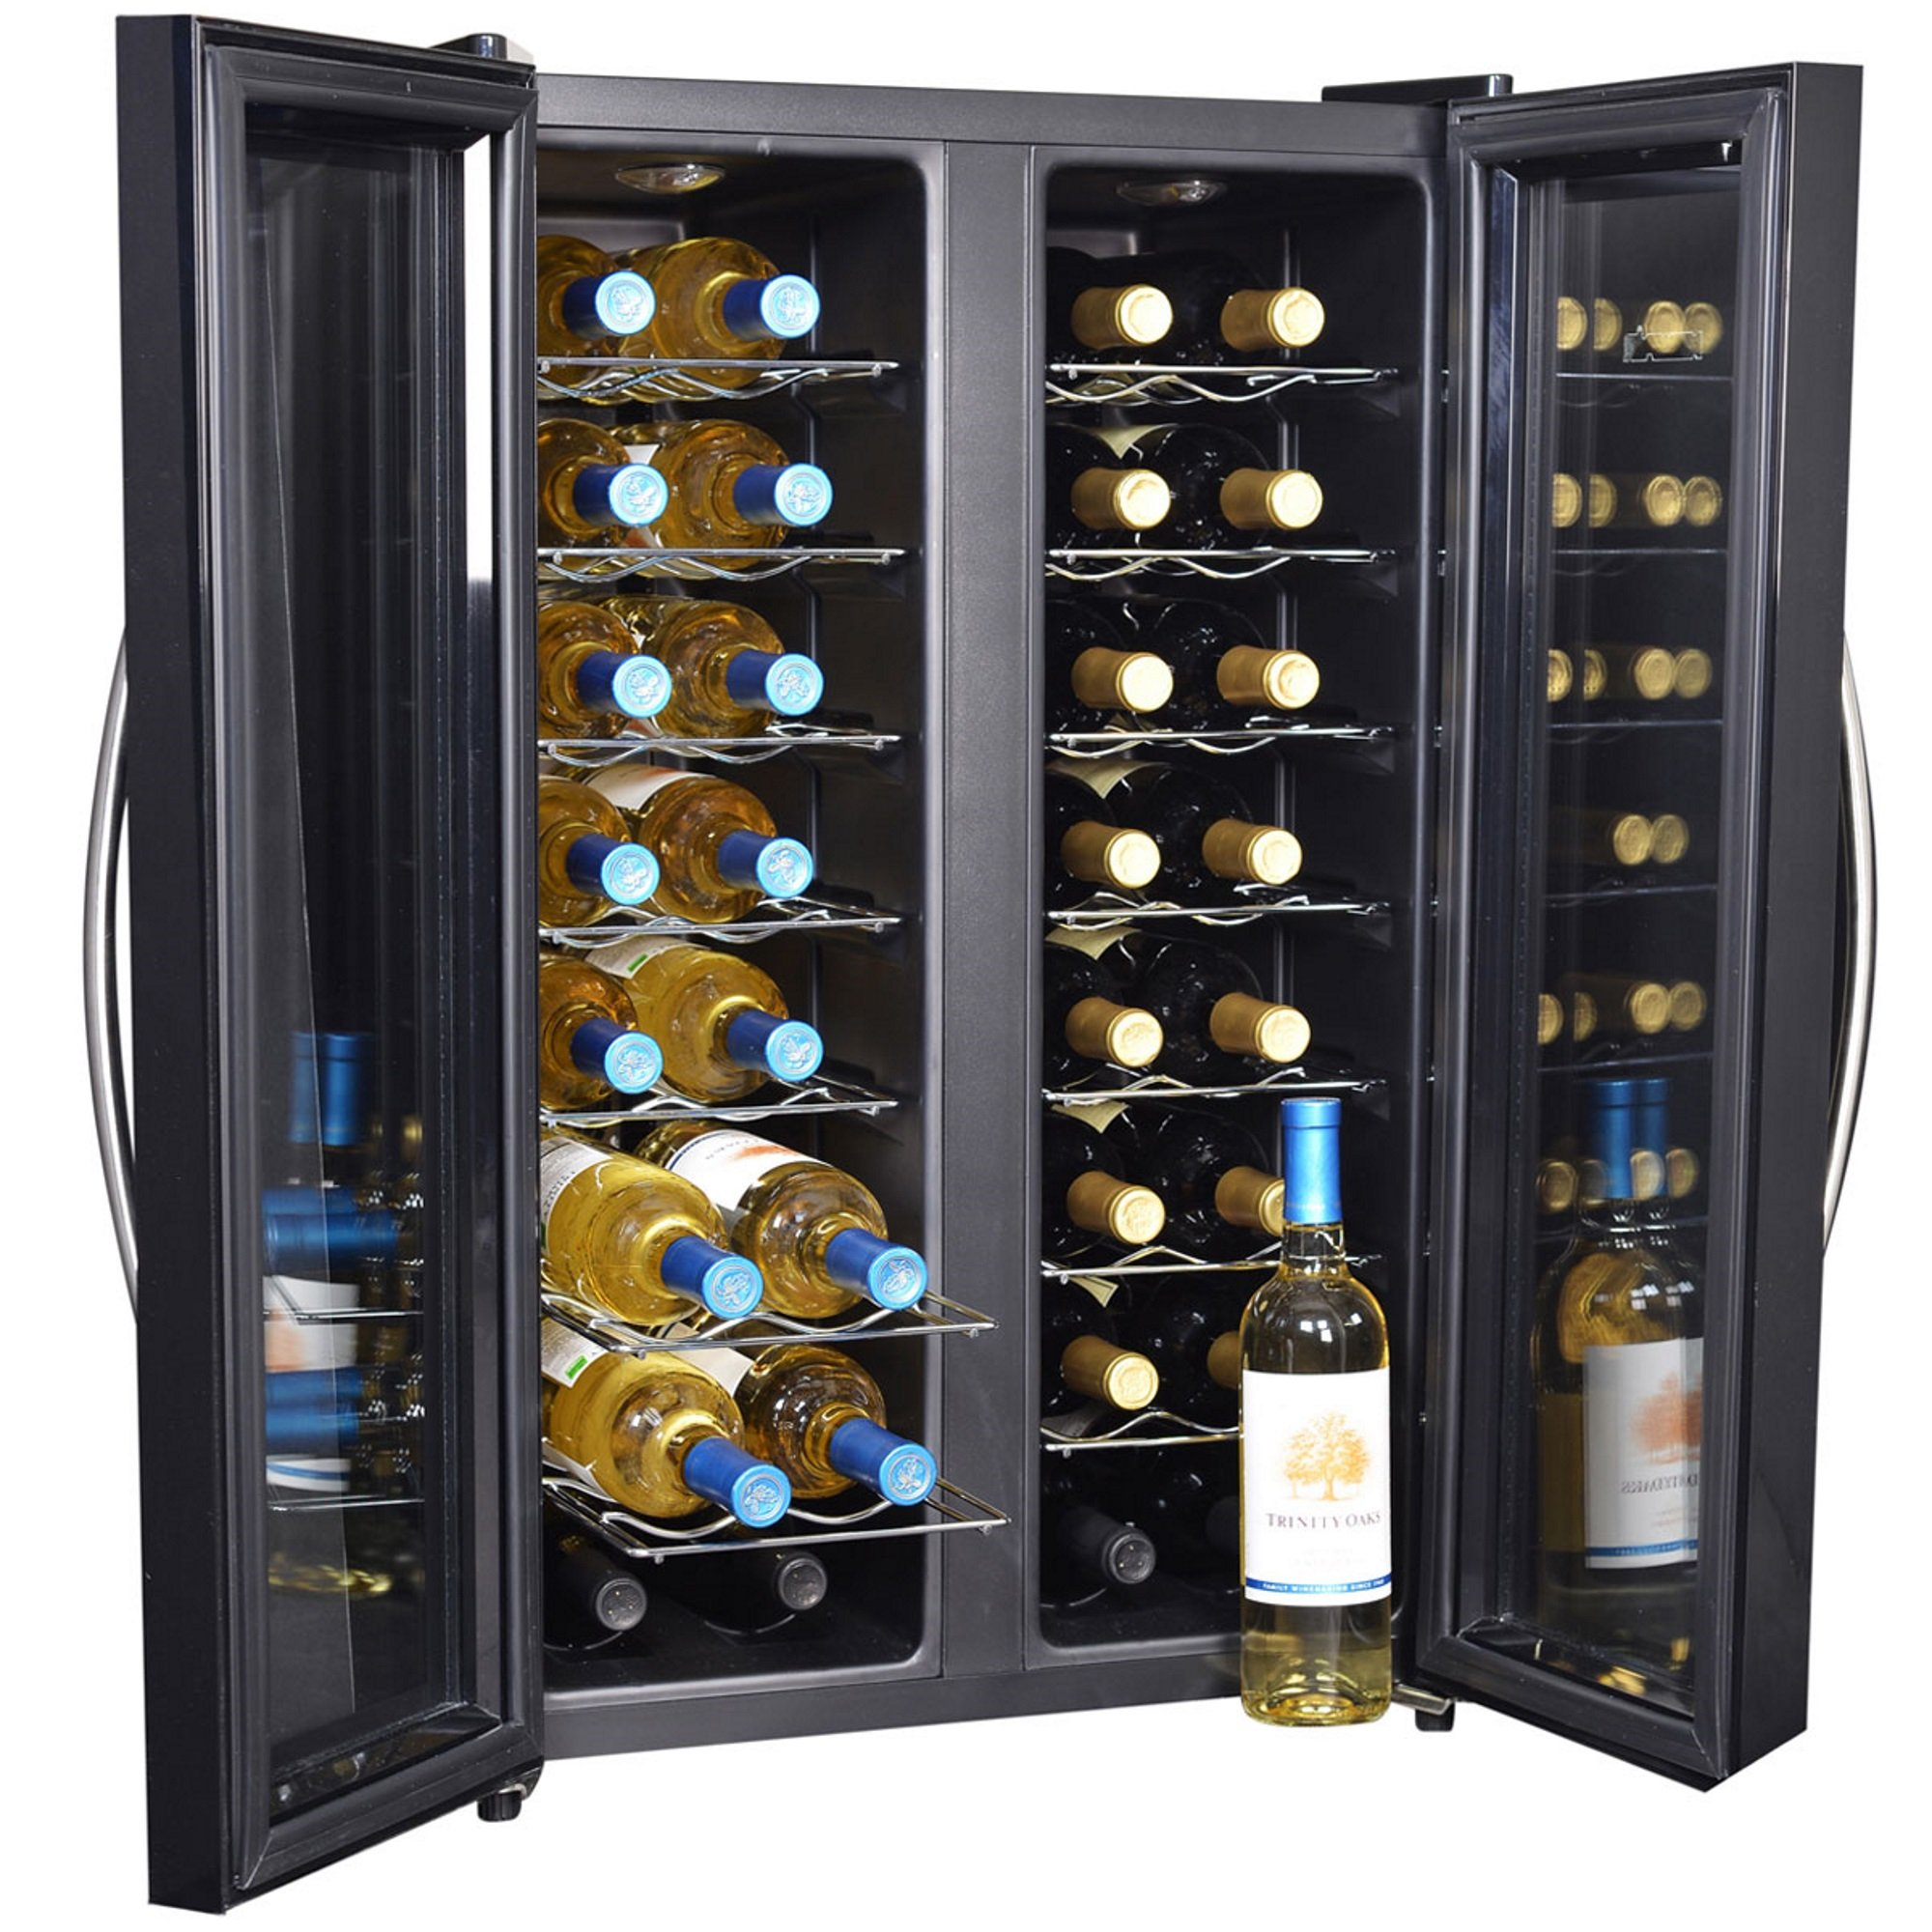 NewAir AW-320ED 32-Bottle Dual Zone Thermoelectric Wine Cooler by NewAir (Image #4)